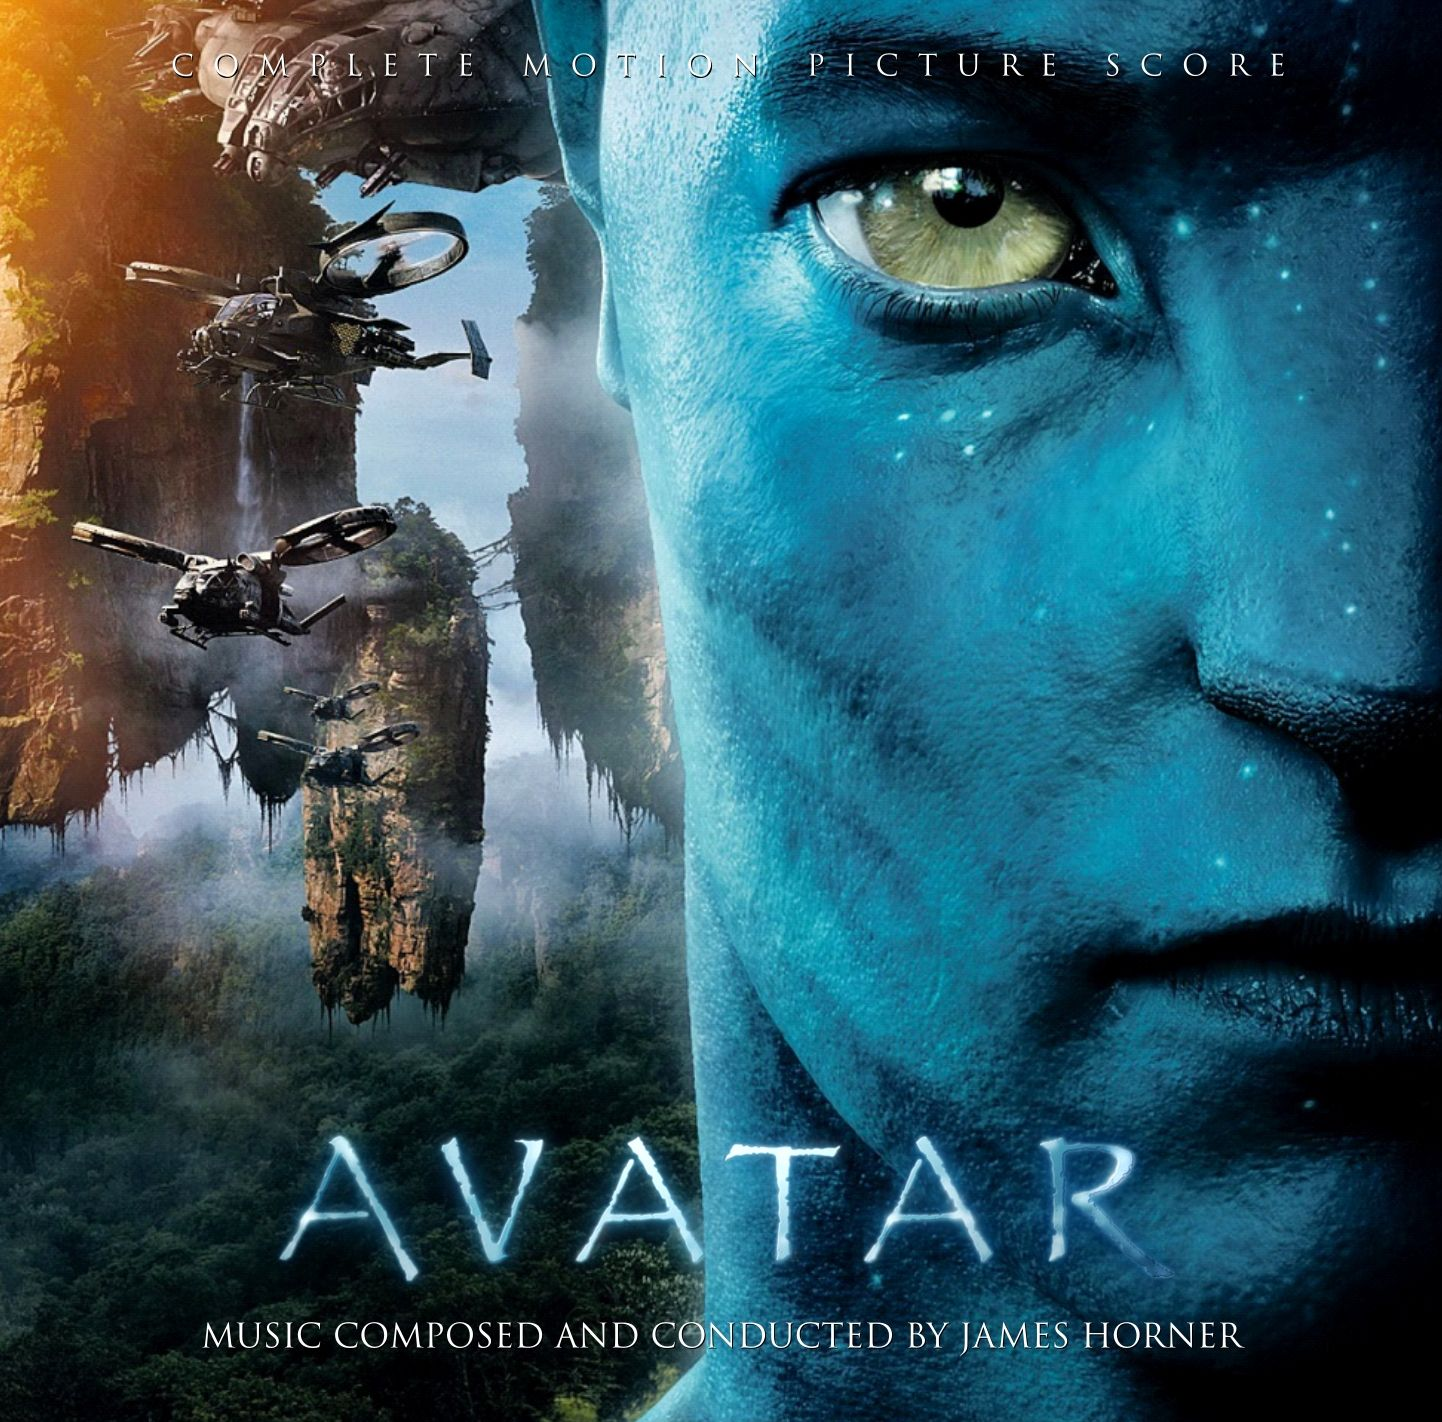 Avatar 2 Movie Trailer: Movies Music & More! (formerly Soundtrack Lover's Paradise